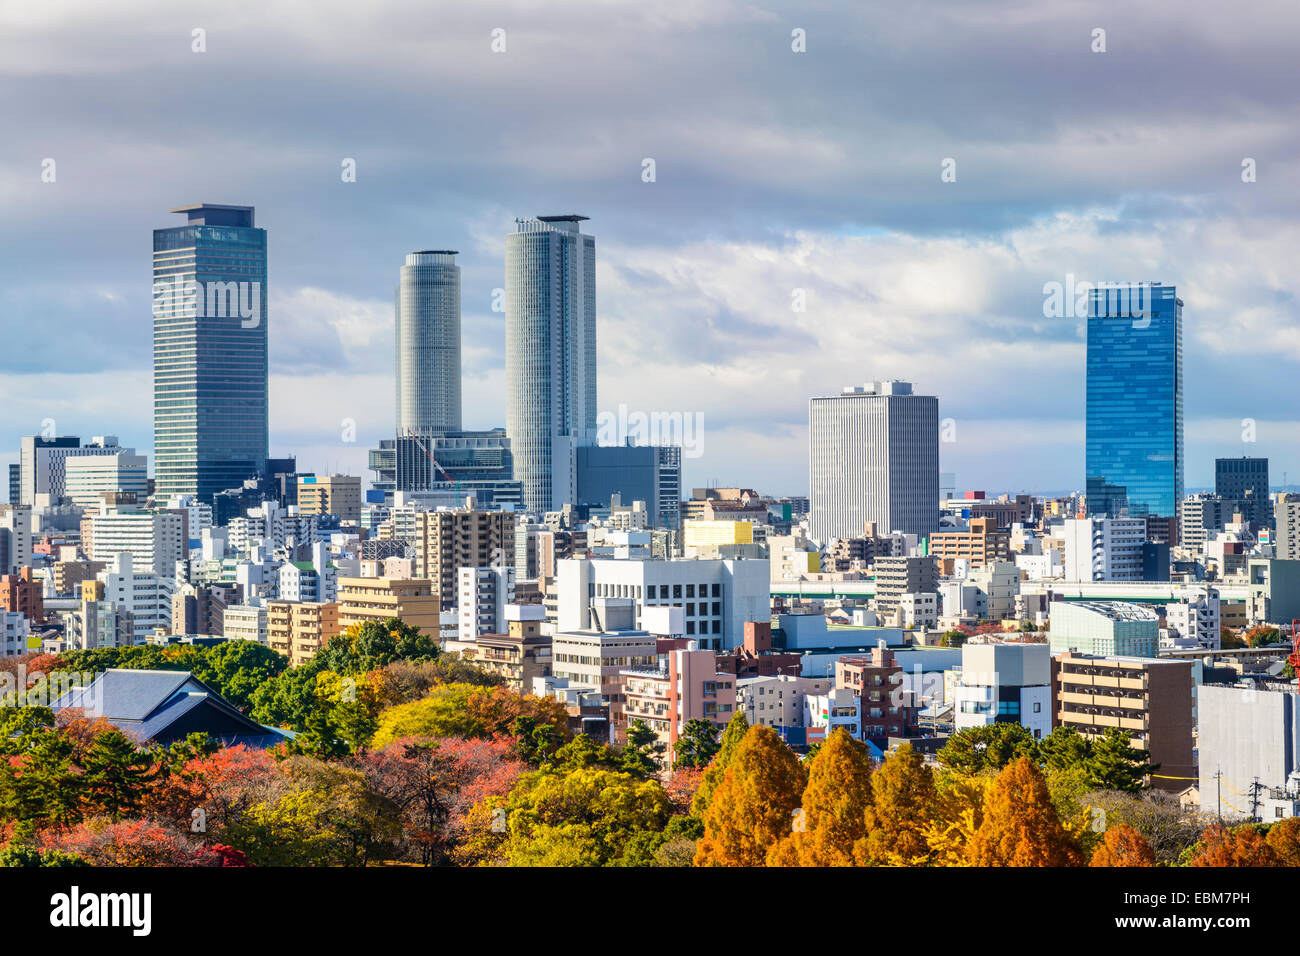 Nagoya, Japan downtown city skyline in the autumn. - Stock Image